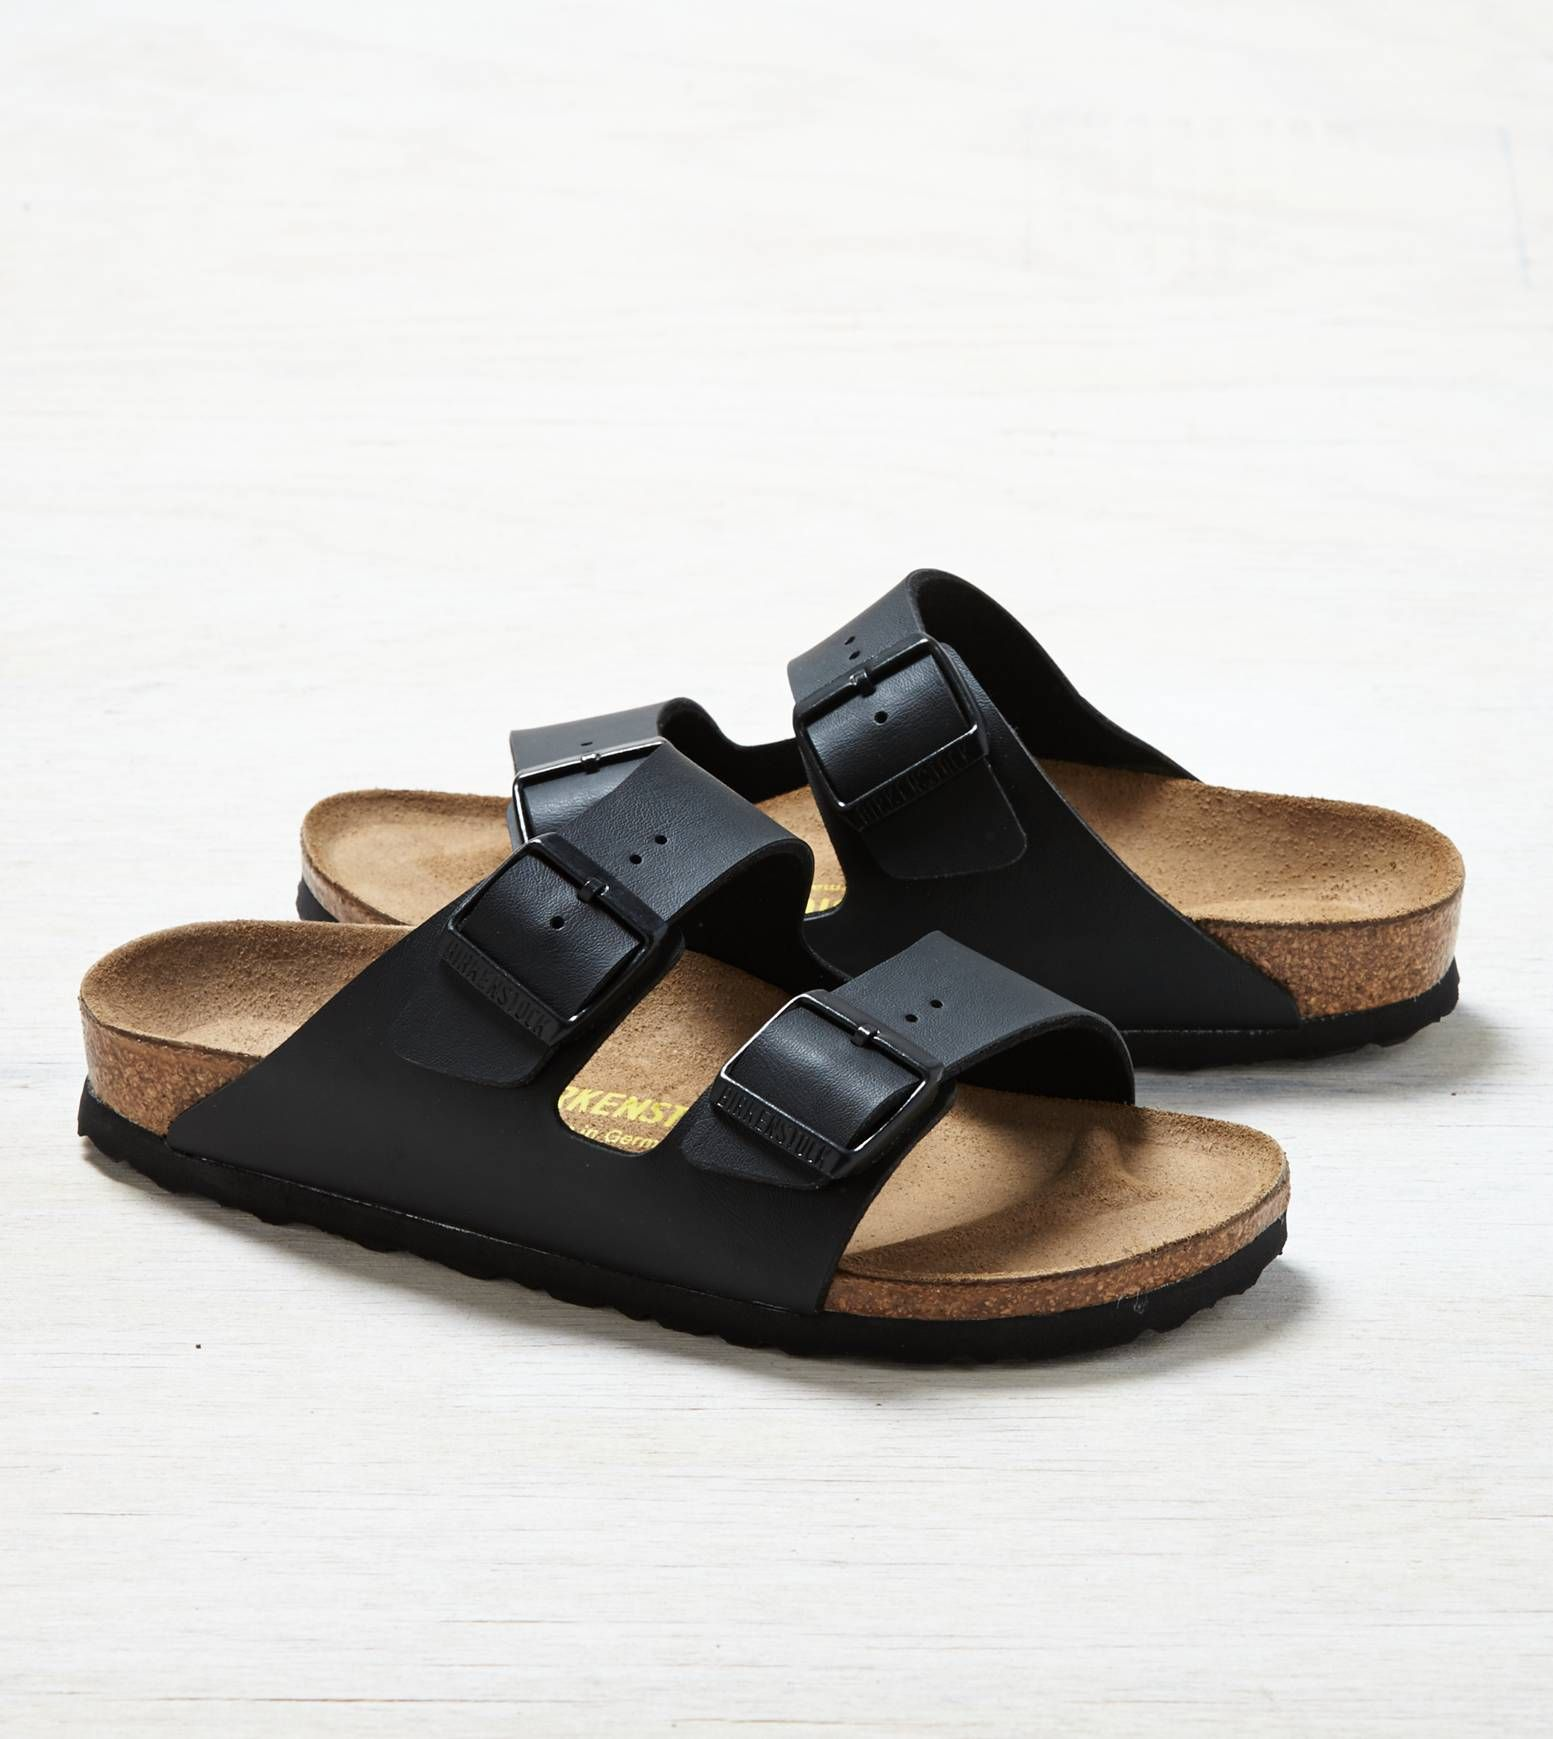 c44787fc8153 Pin by Vintage Clothing on Vintage Shoes in 2019